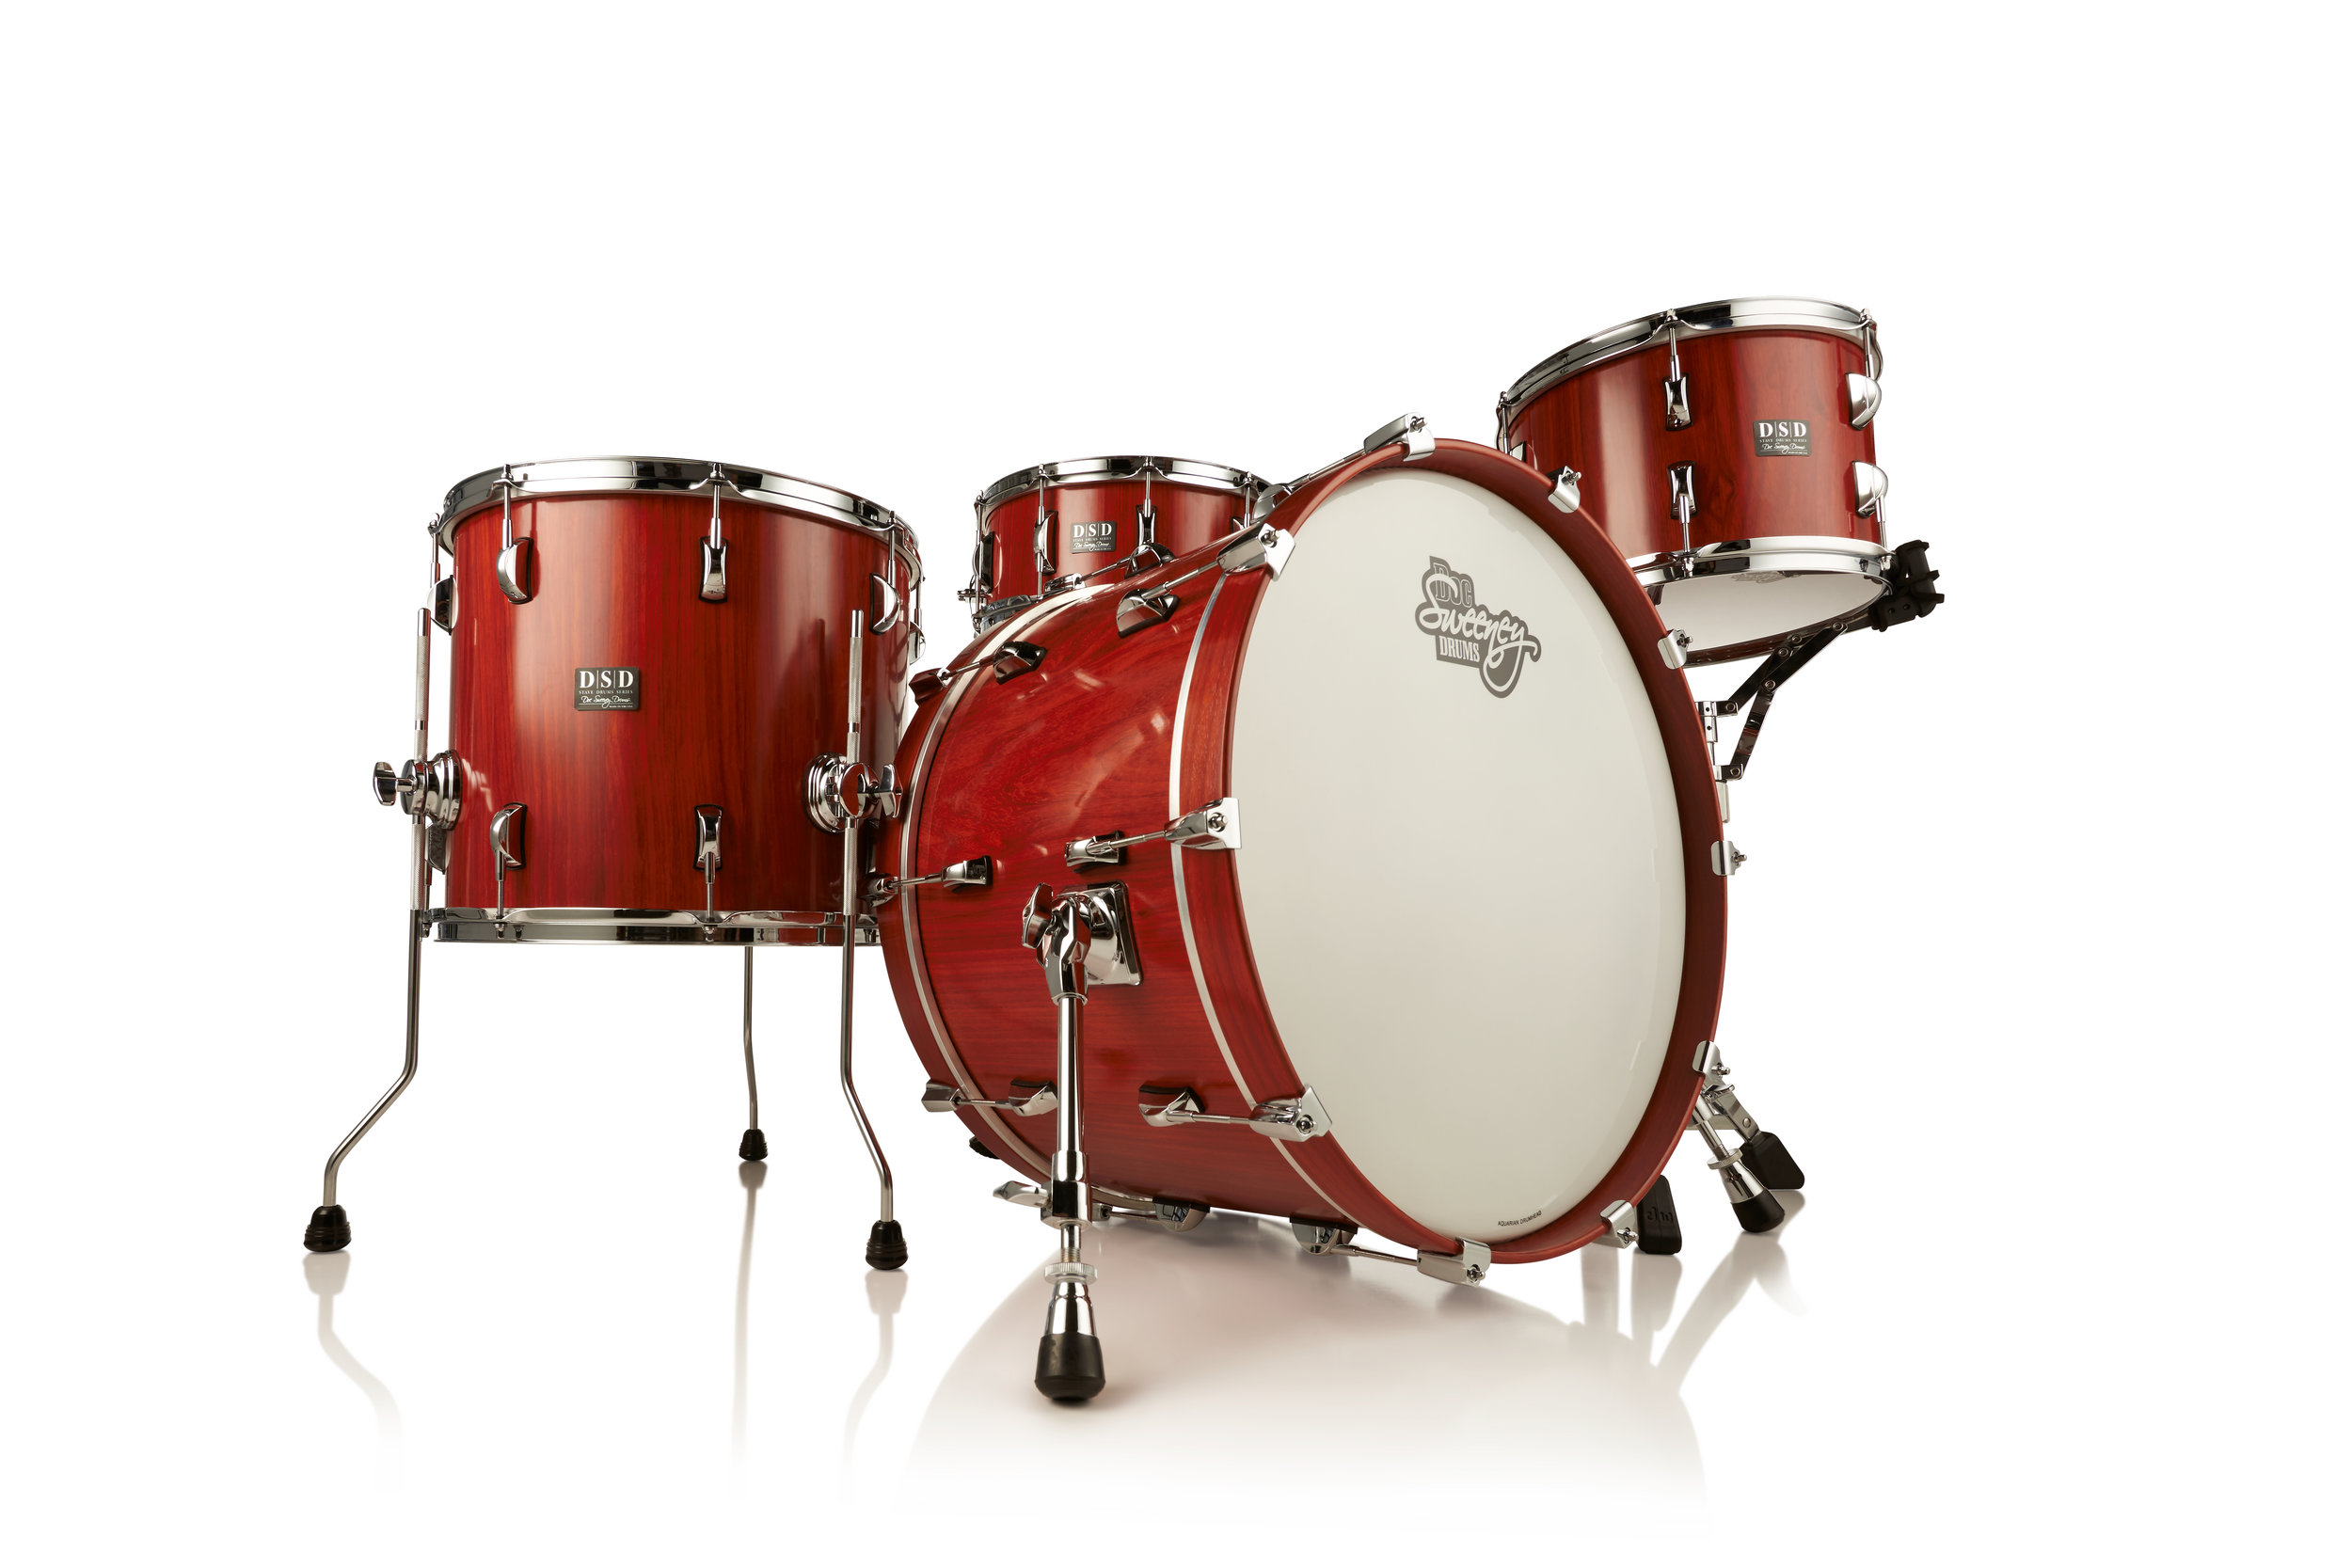 DSD Stave Drums Series - DSD Stave Drums Series is offered in Tiger Maple and Padauk, domestic and exotic species with incredible tonal qualities. Kits come in two configurations (optional 14x6 matching snares are available):Model 1 (20x14, 14x13, 12x8)Model 2 (22x14, 16x14, 13x9)